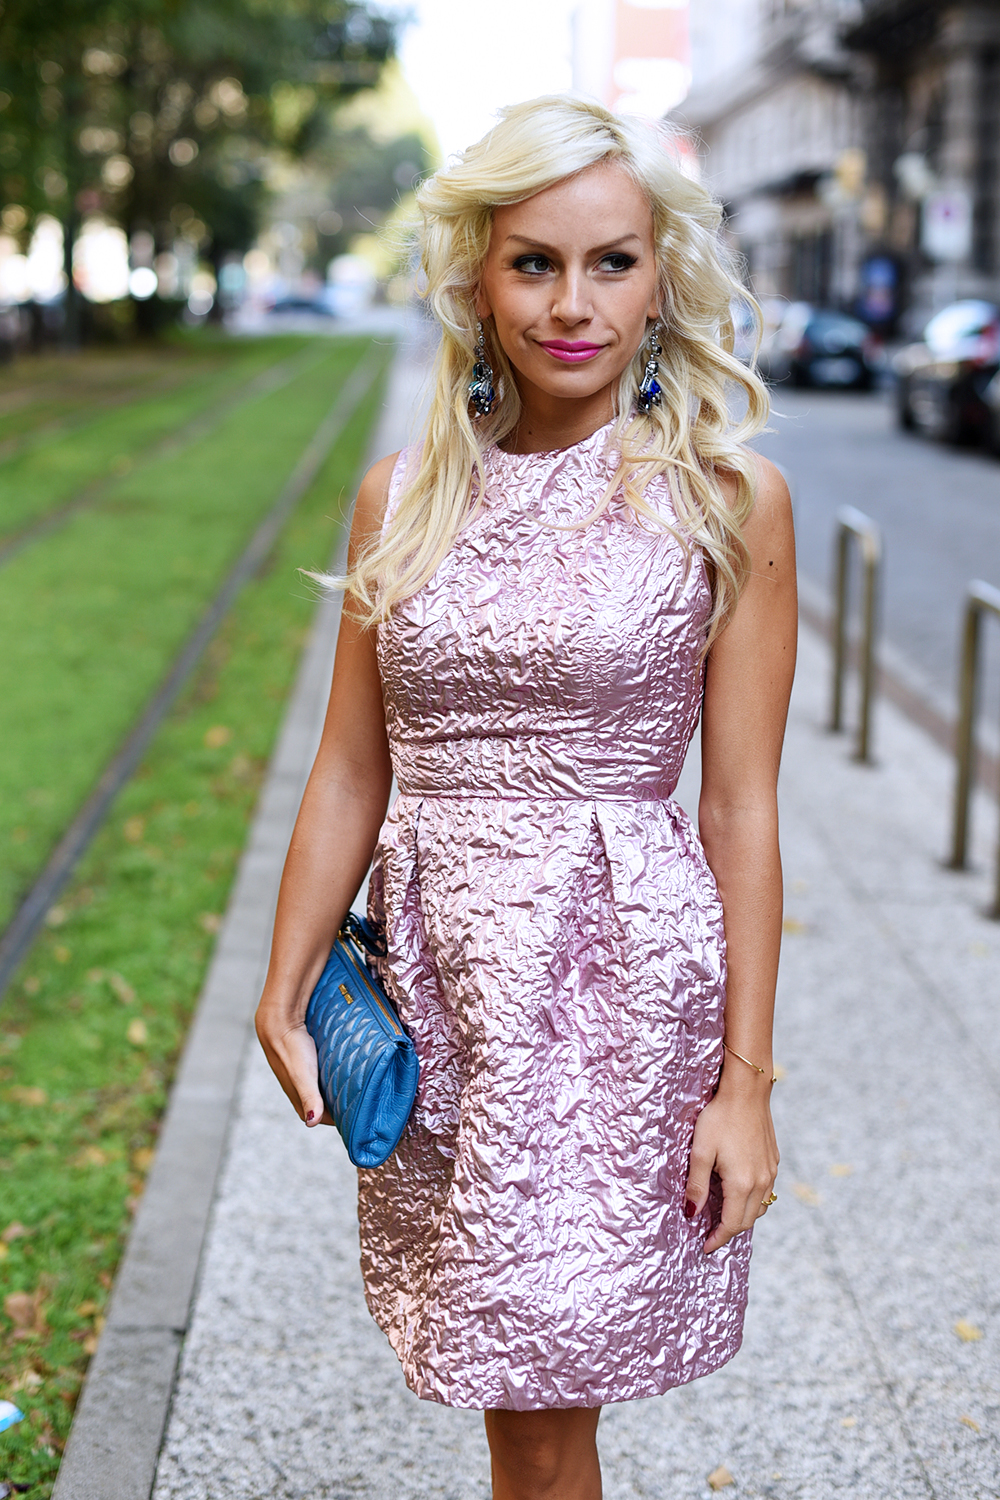 Giovanna Nicolai abiti cerimonie, Giovanna Nicolai vestiti, how to wear a pink dress, come indossare un vestito rosa, cosa abbinare ad un vestito rosa, Sergio Levantesi shoes scarpe - outfit fashion blogger It-Girl by Eleonora Petrella